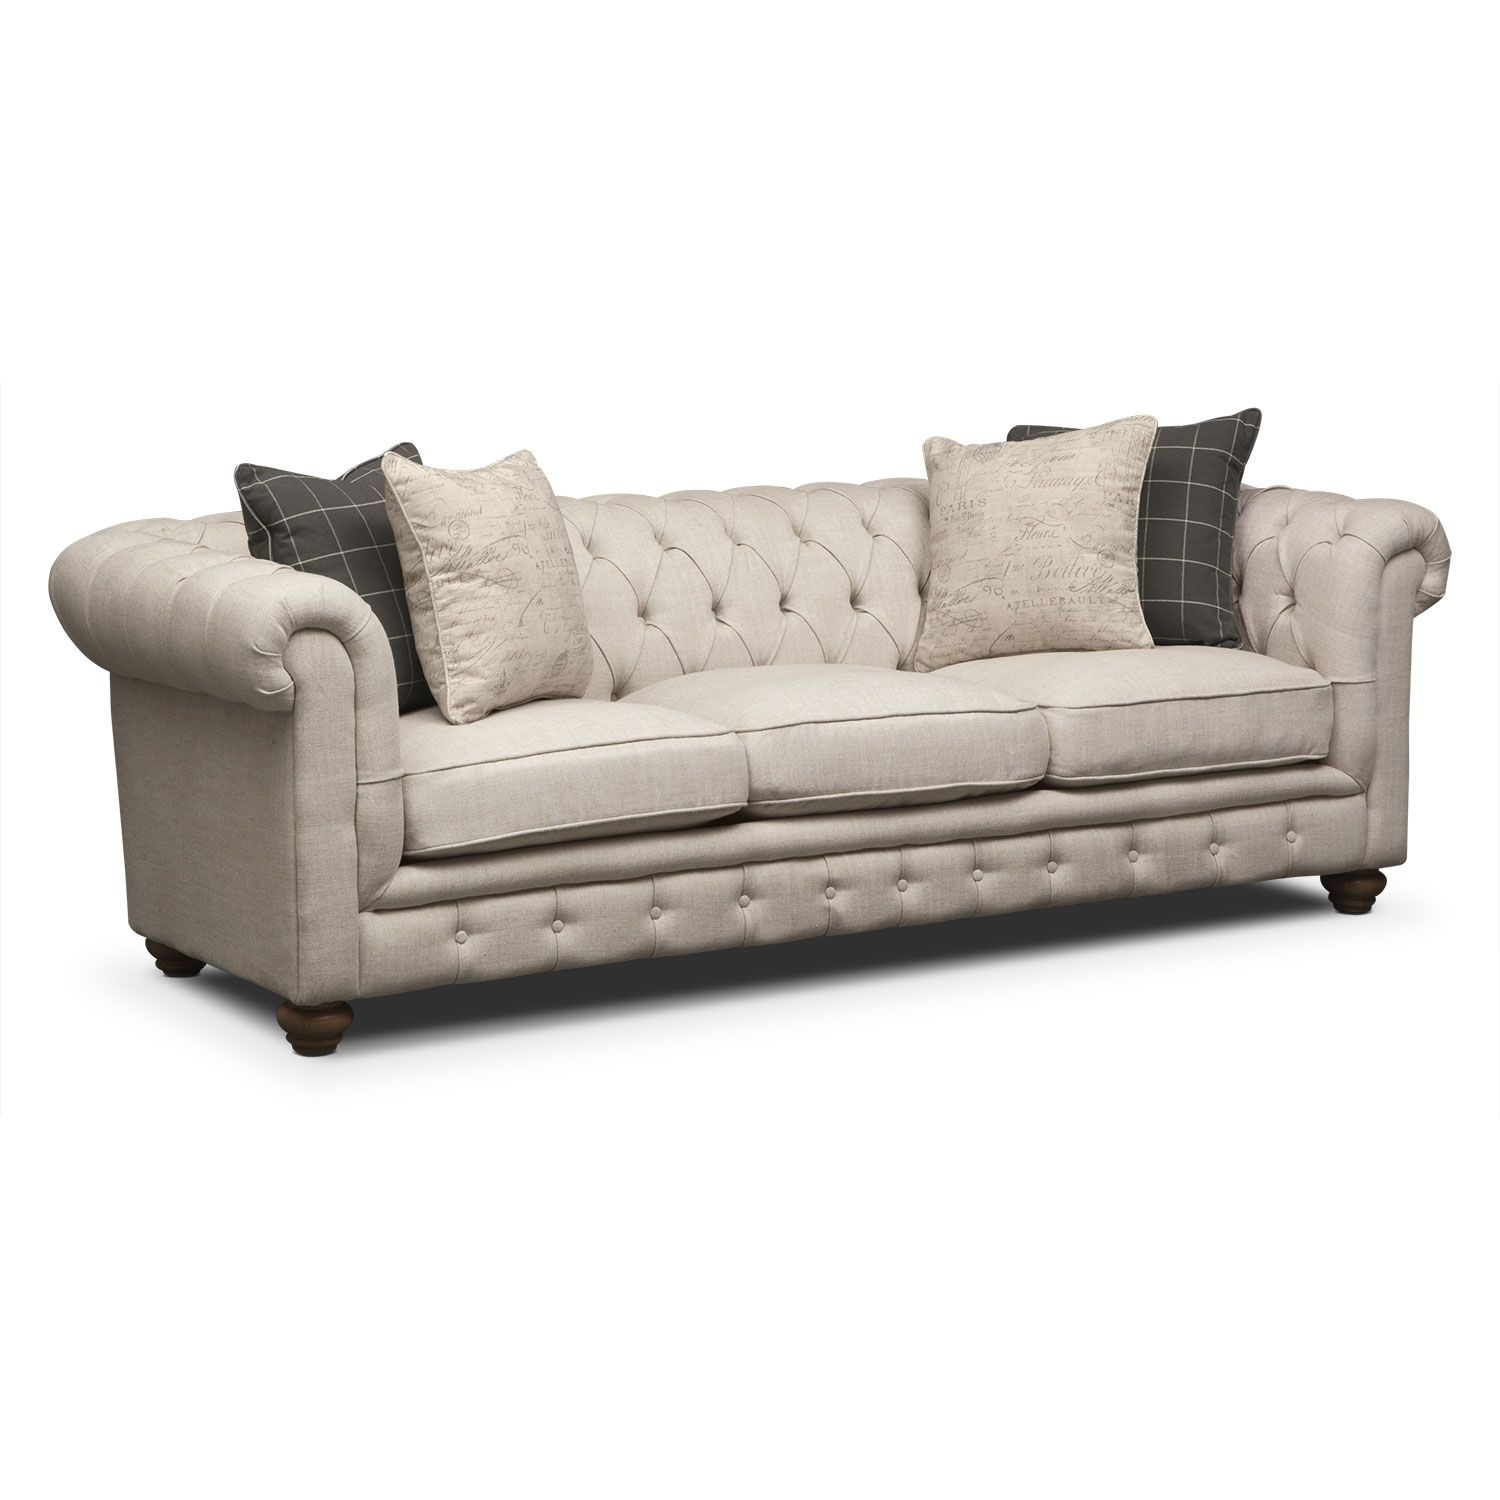 American Signature Couches The Most Recognized Item In Furniture Is Couch These Days Every Residence That Modern Have